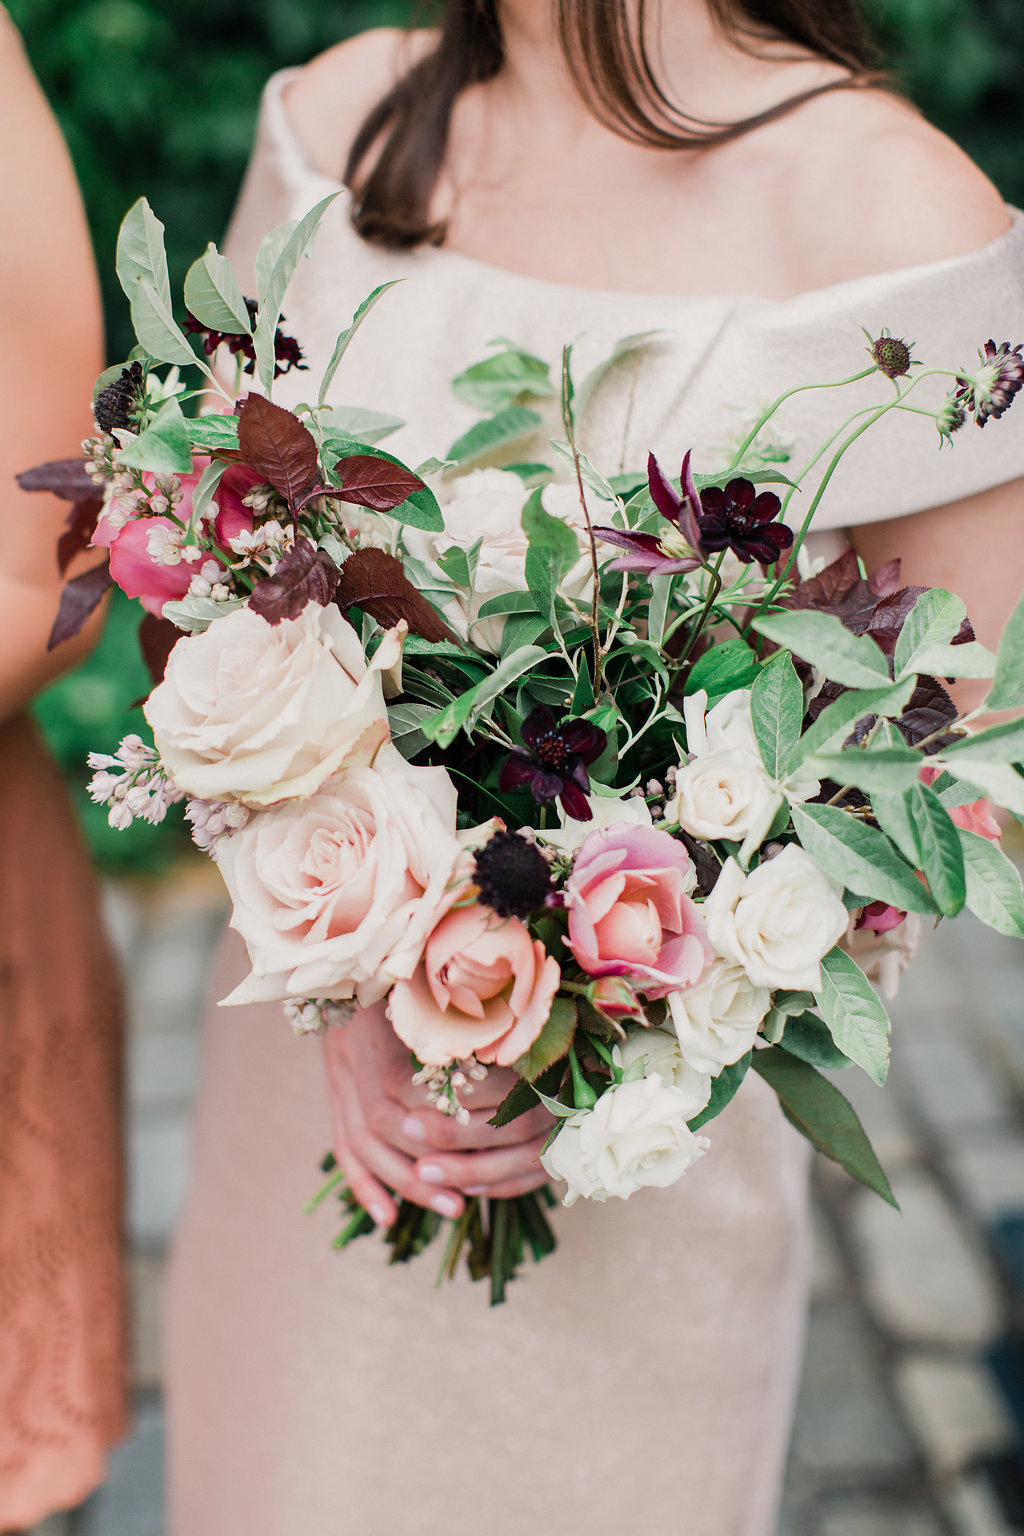 Blush, dusty pink and oxblood floral bouquet